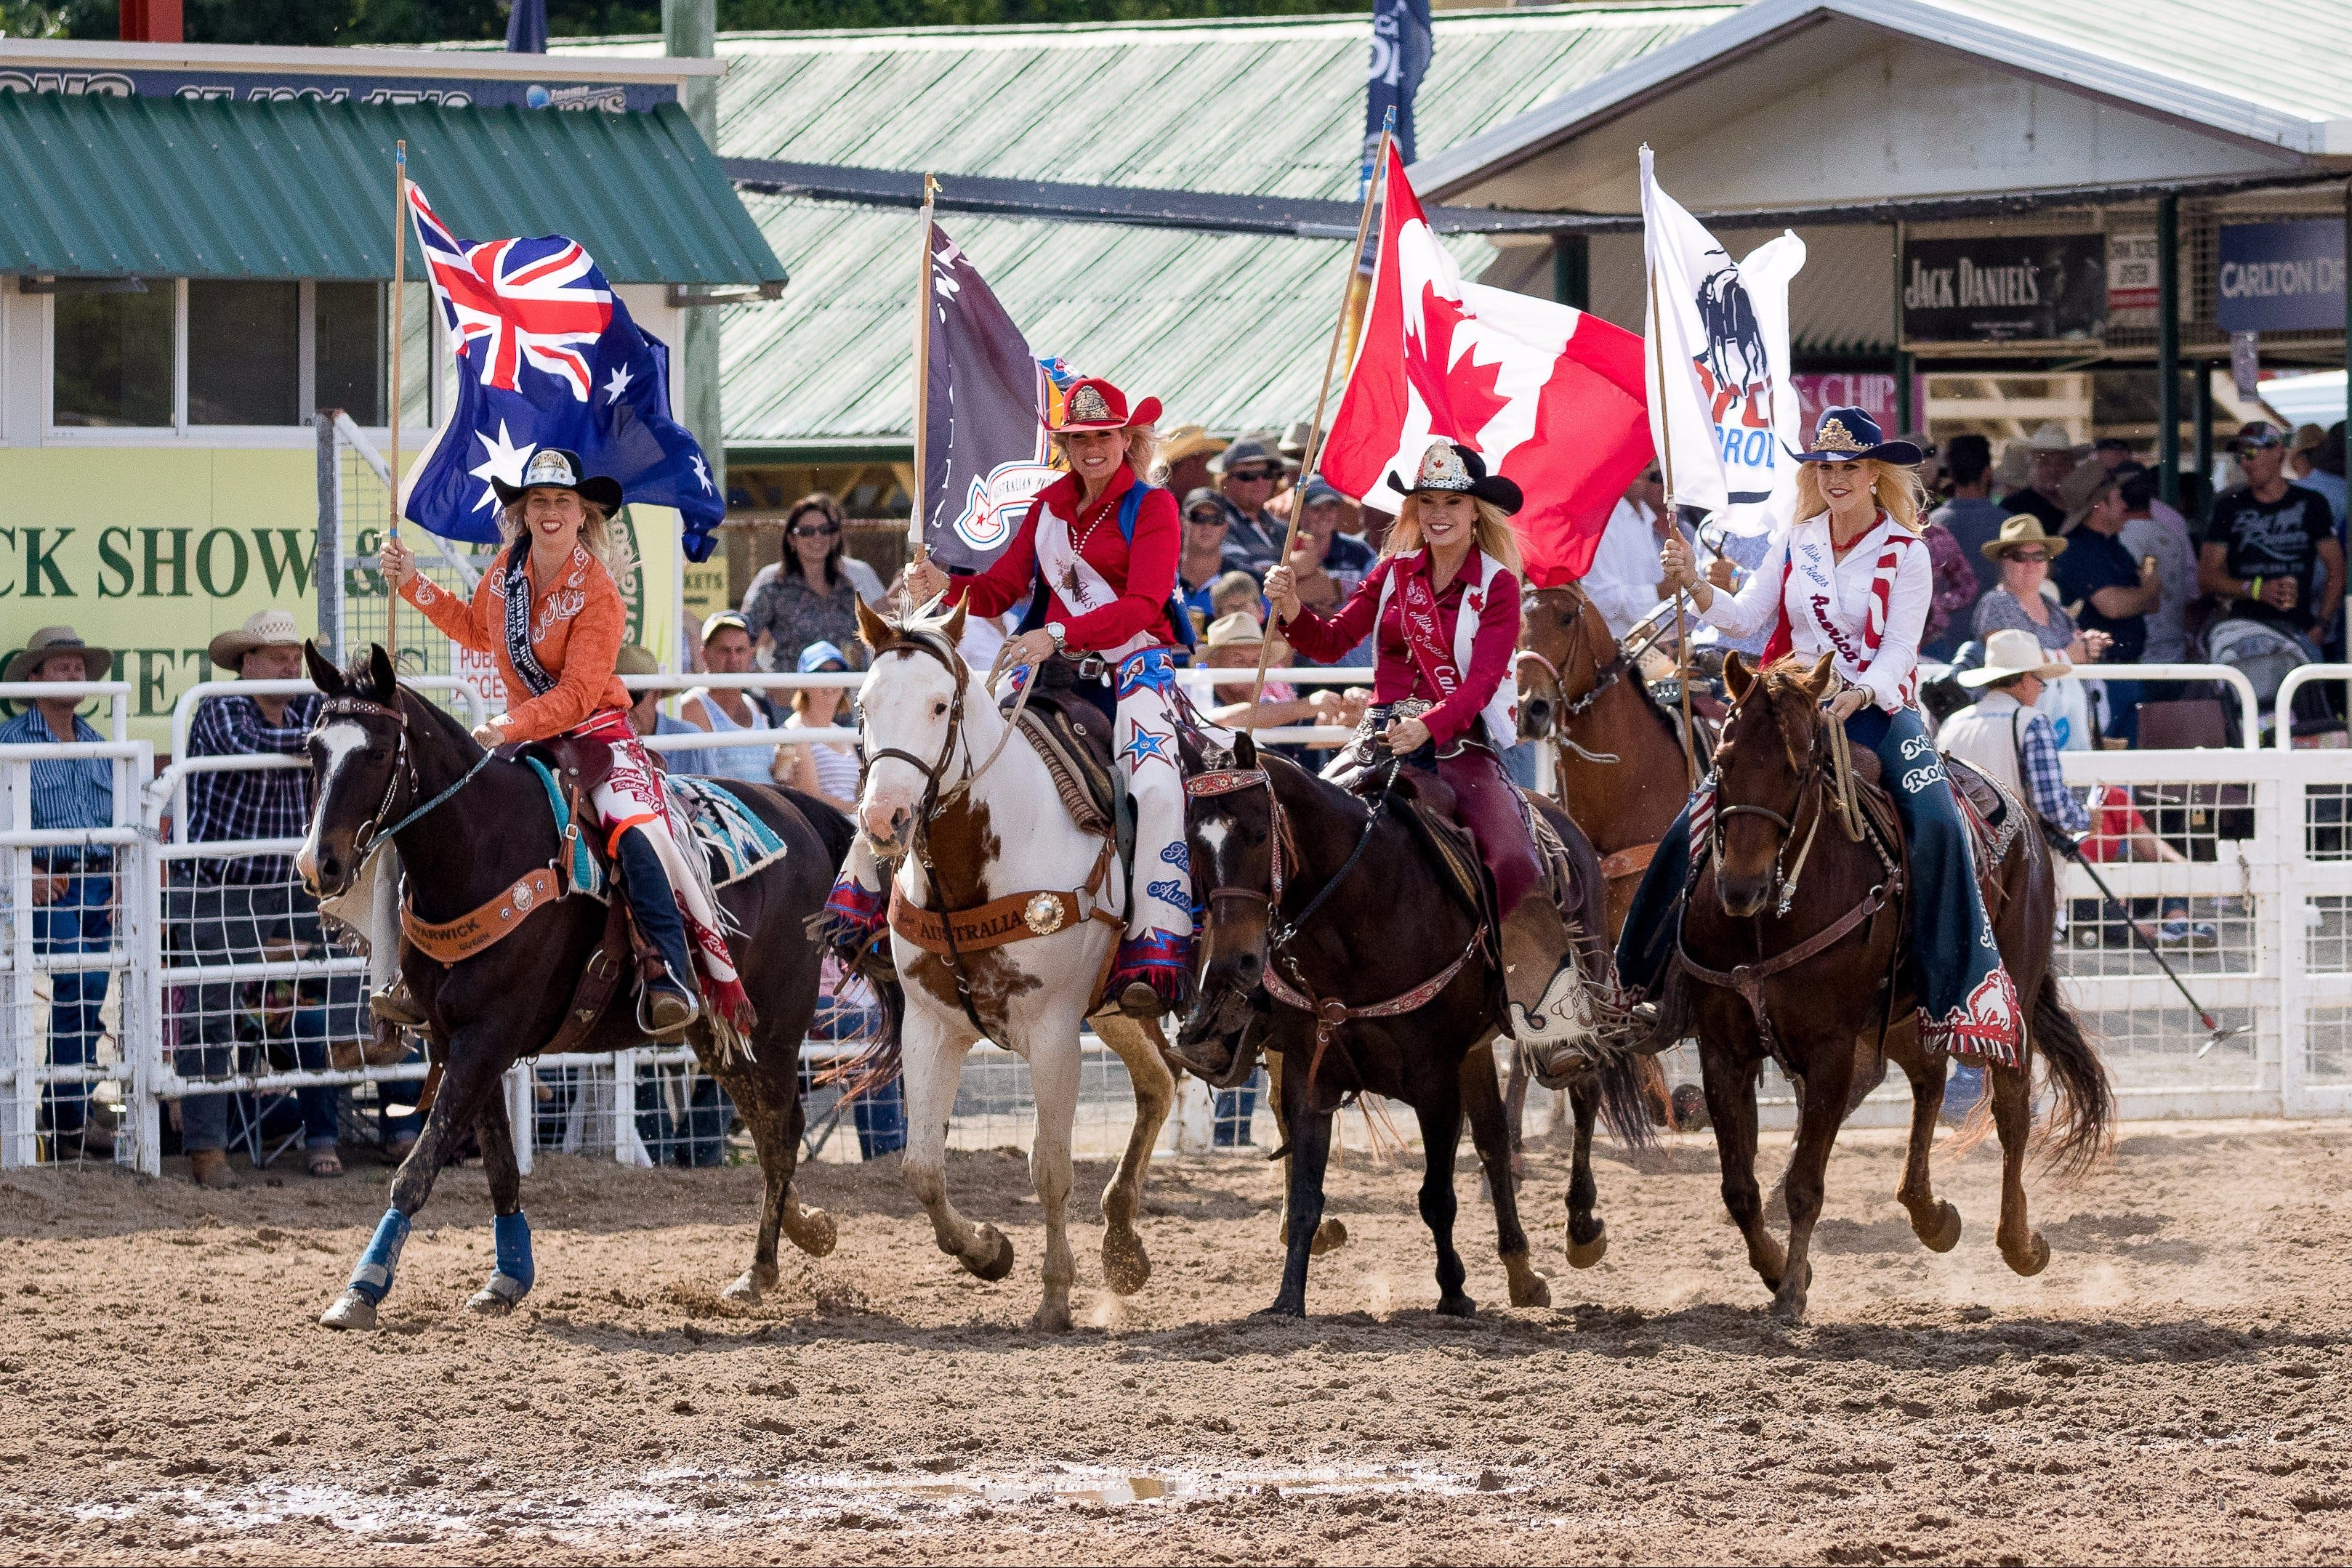 Warwick Rodeo National APRA National Finals and Warwick Gold Cup Campdraft - Accommodation Tasmania